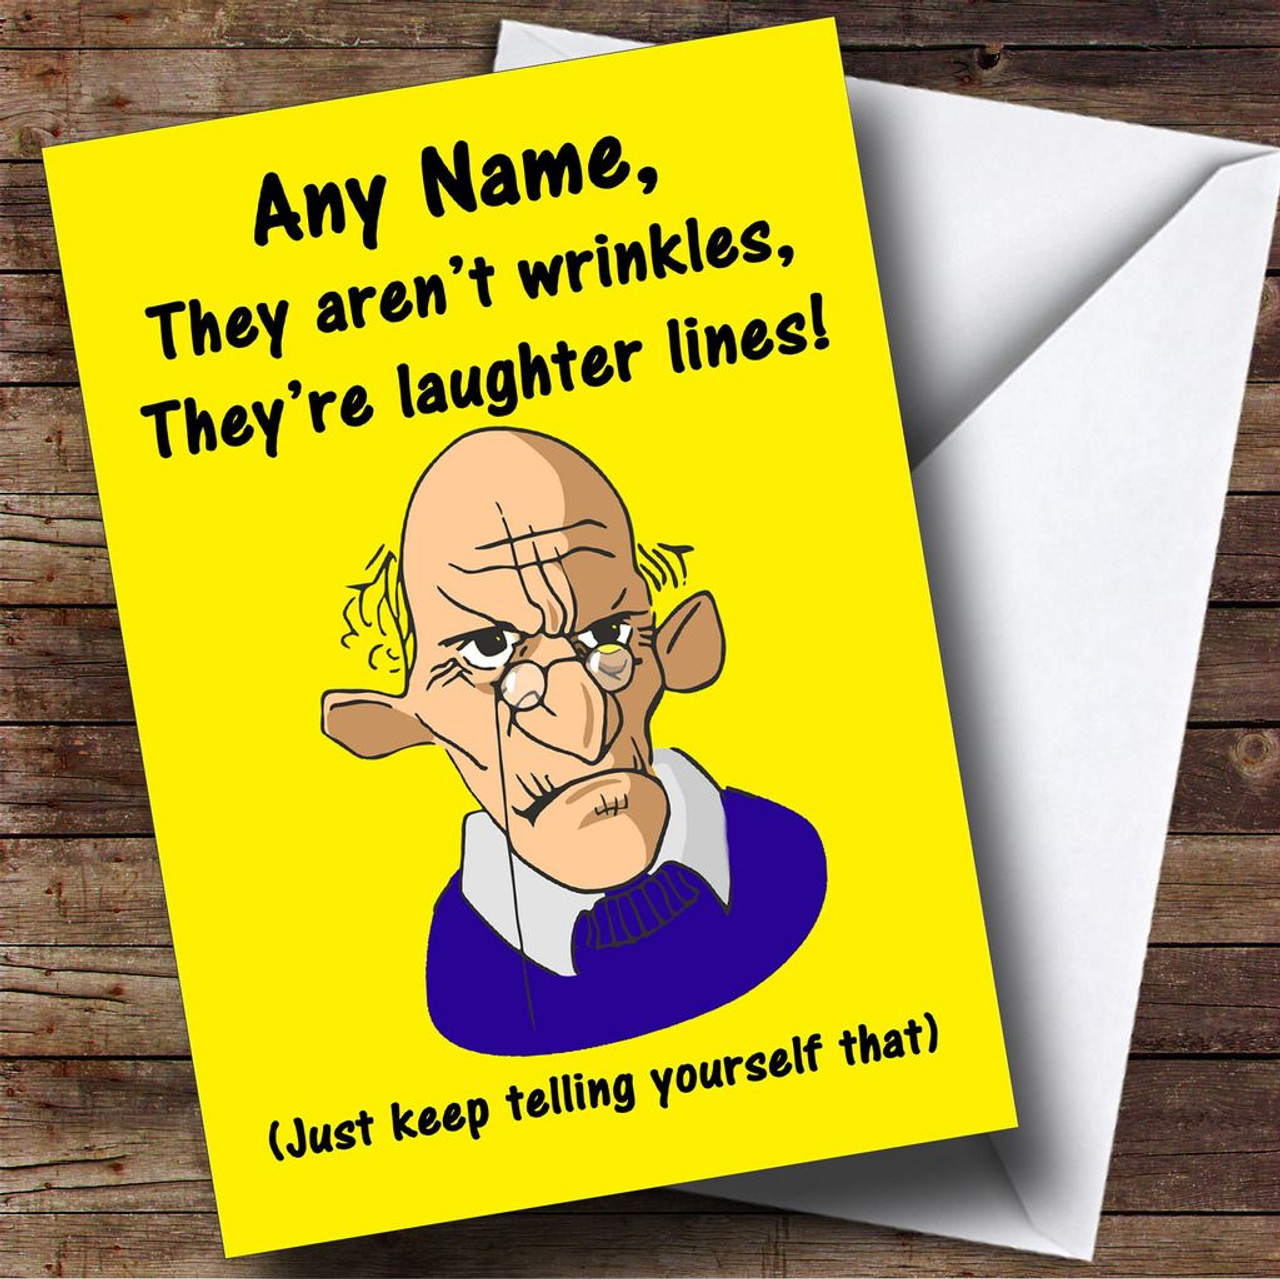 Old Man Laughter Lines Wrinkles Funny Personalised